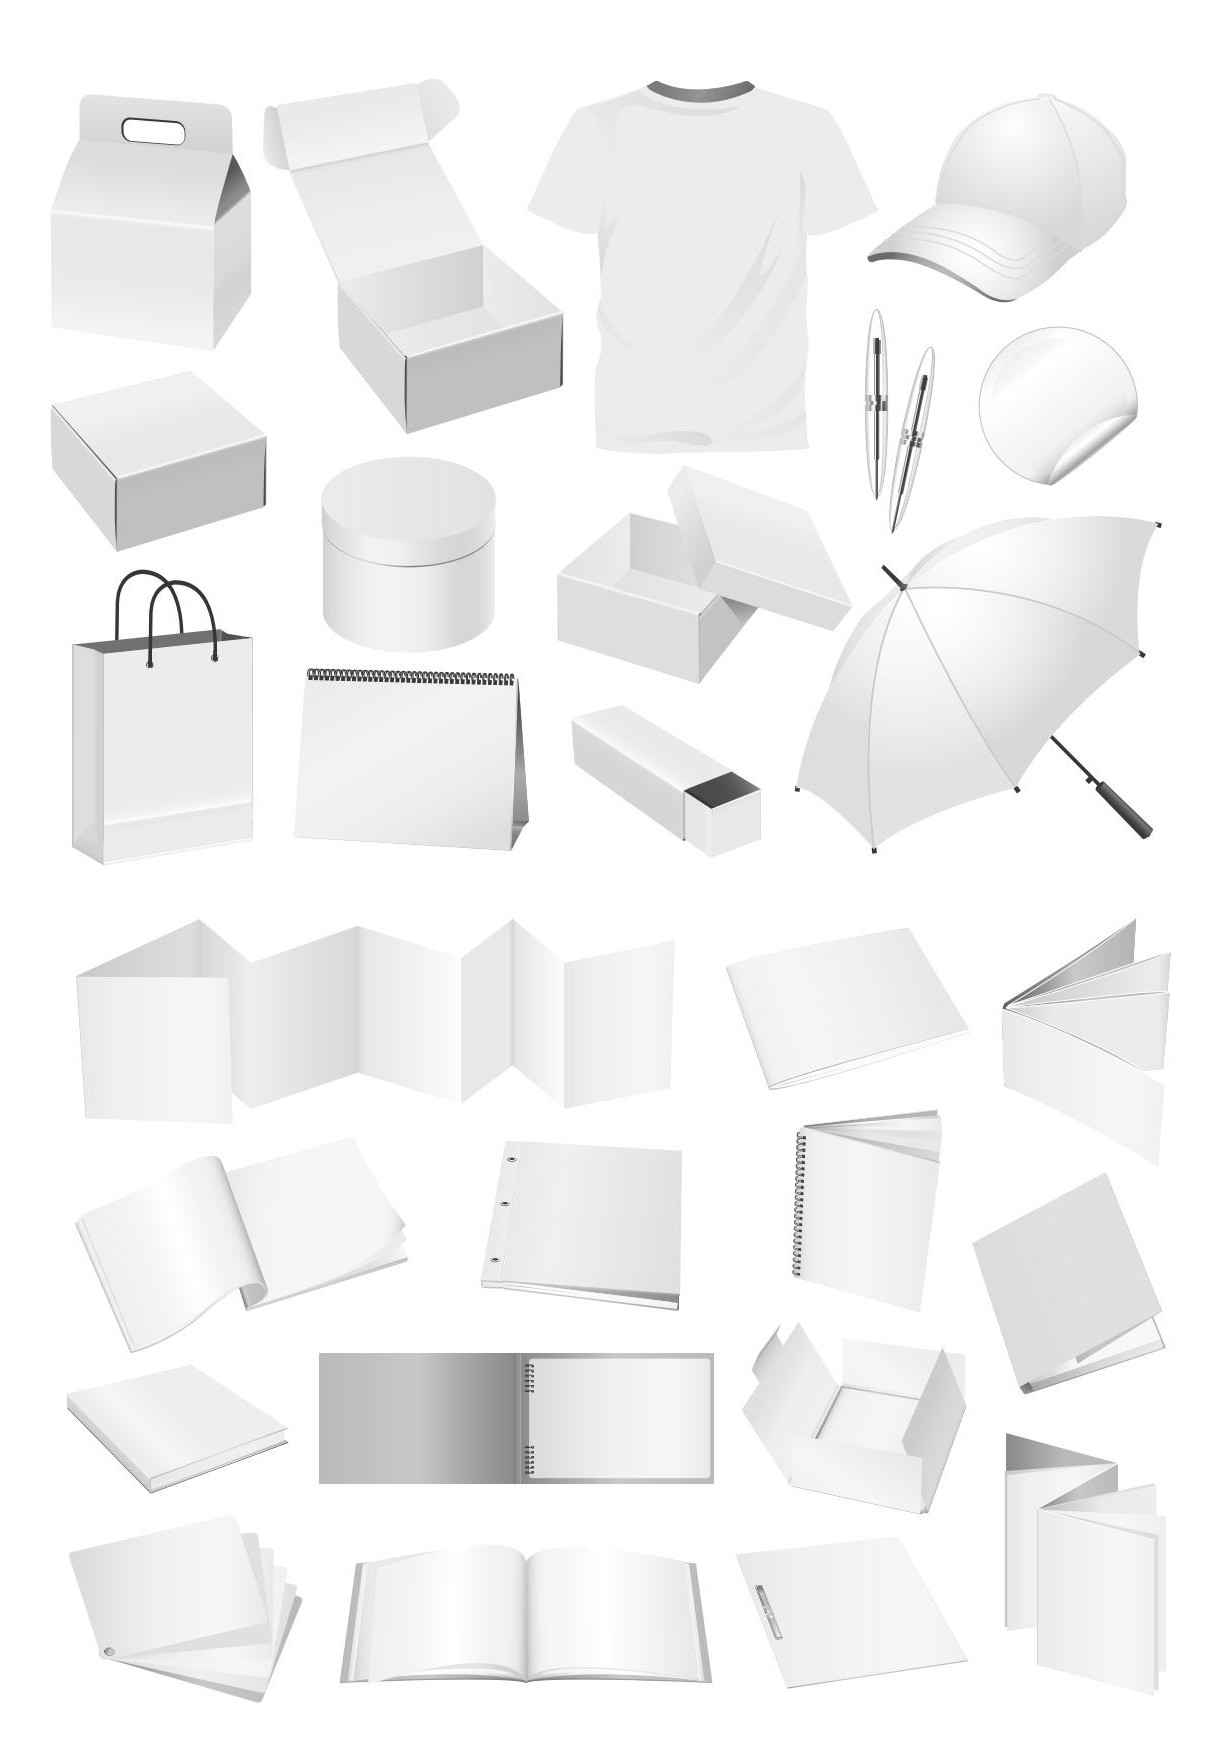 Blank Enterprise Materials png